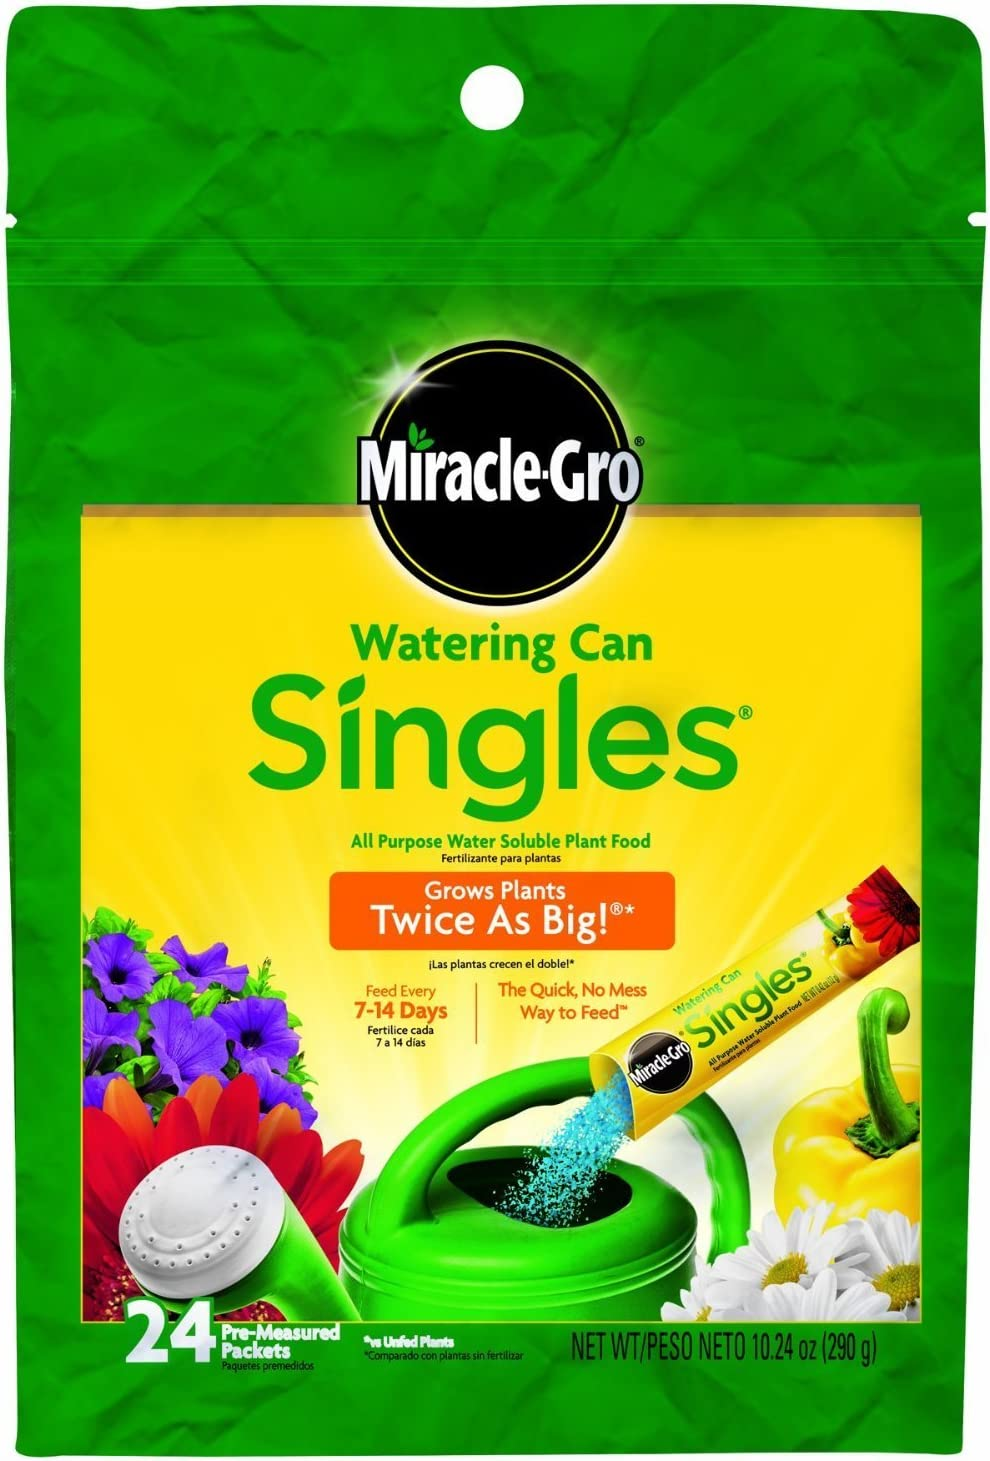 Miracle-Gro 1013202 Watering Very popular! Can Singles 24 - Includes Max 76% OFF Pre-Measu